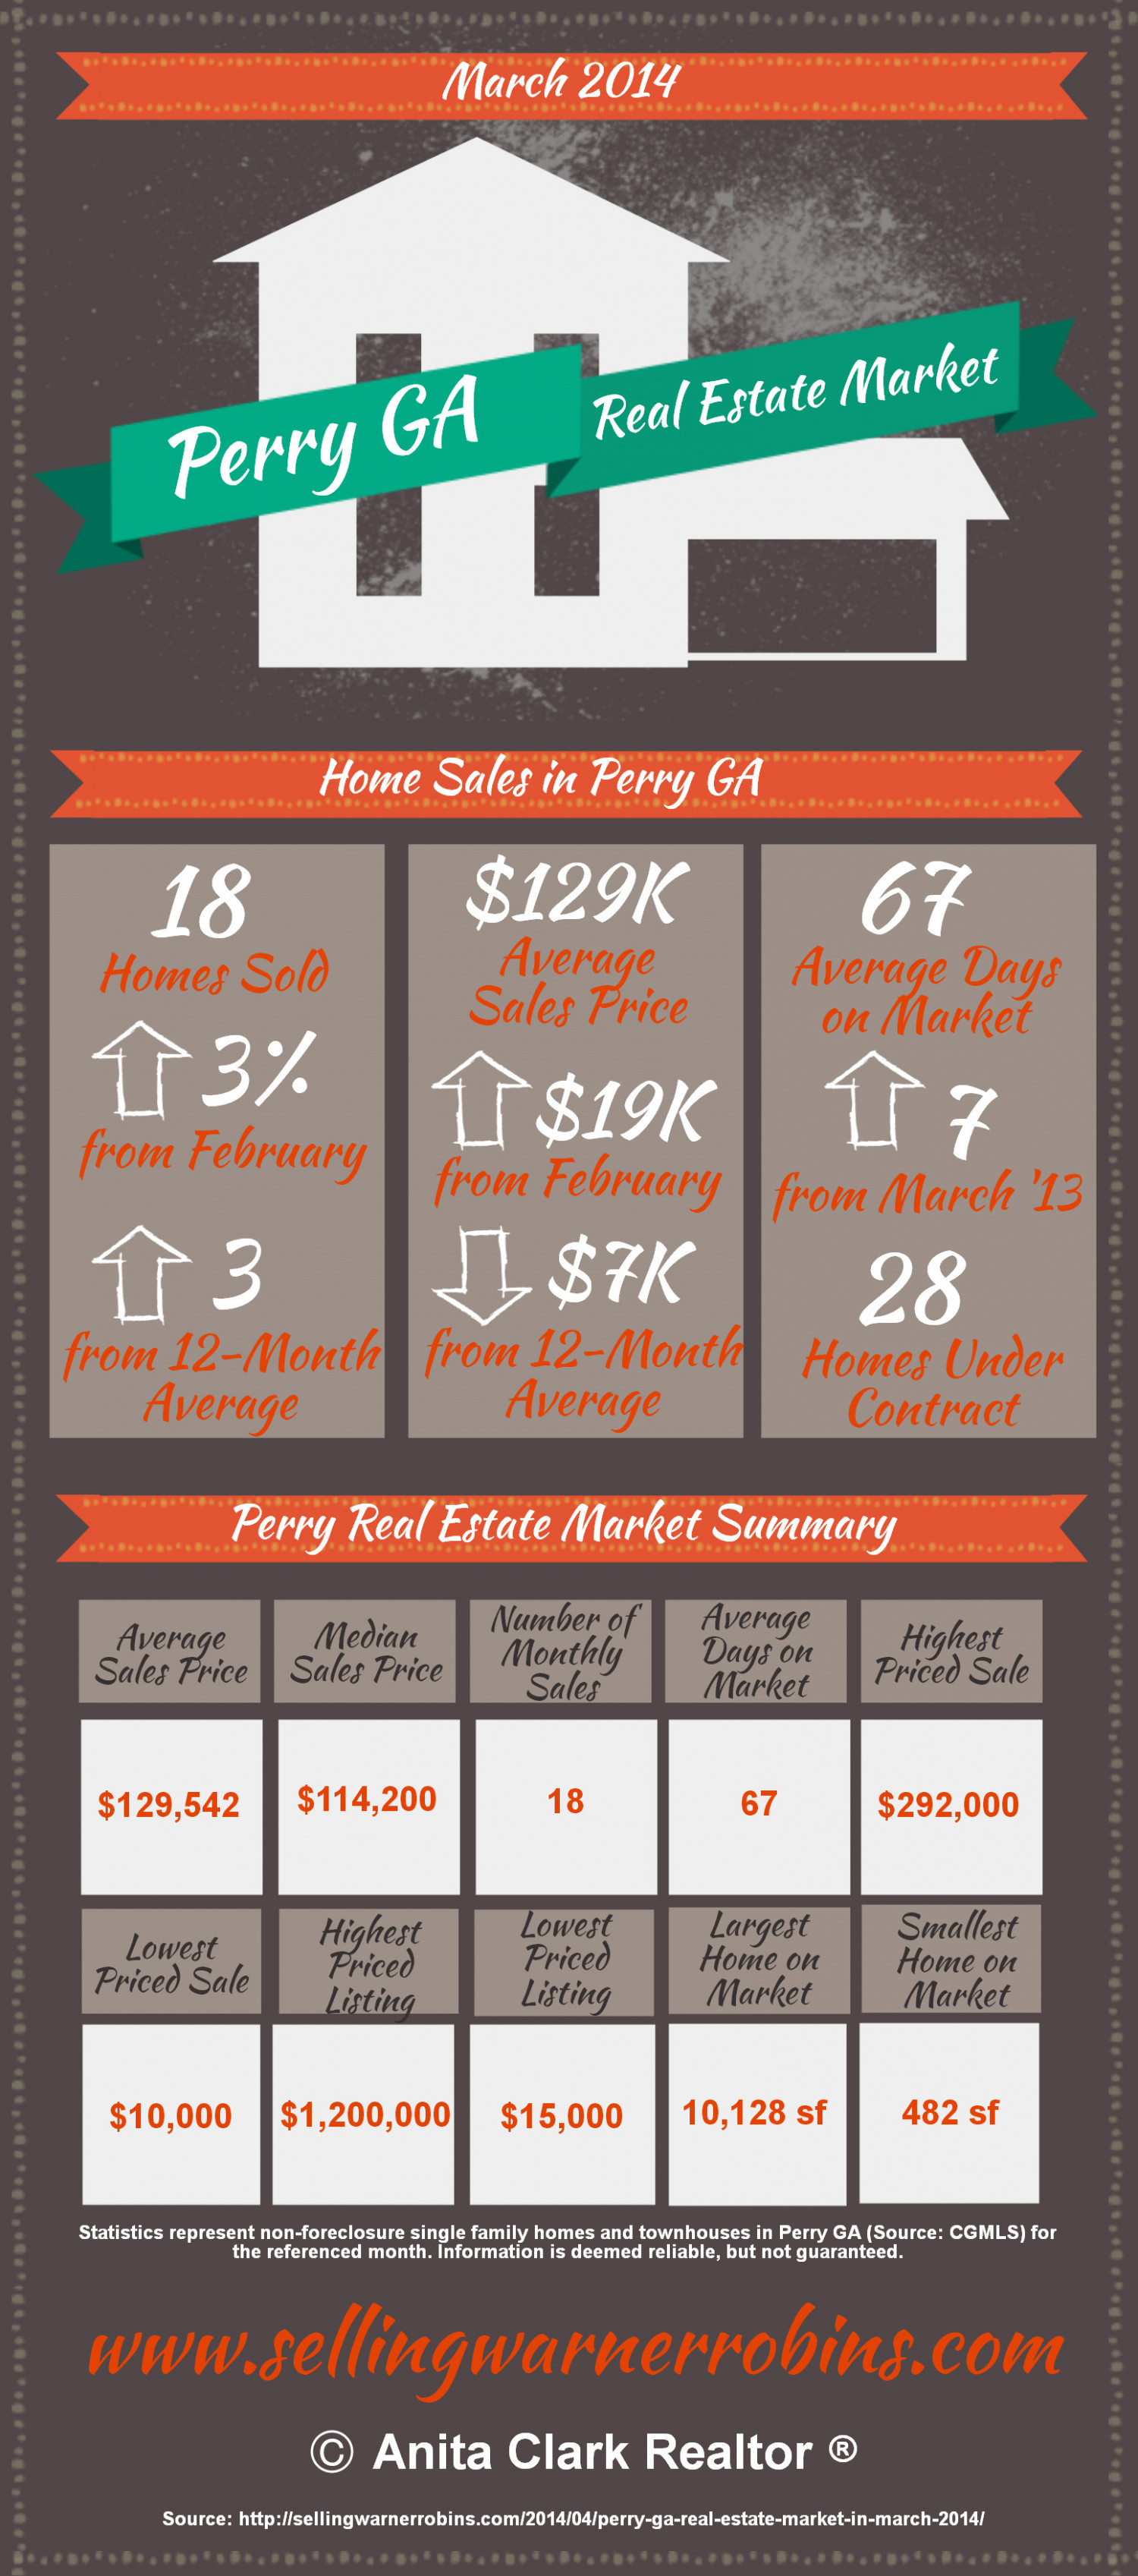 Perry GA Real Estate Market in March 2014 Infographic